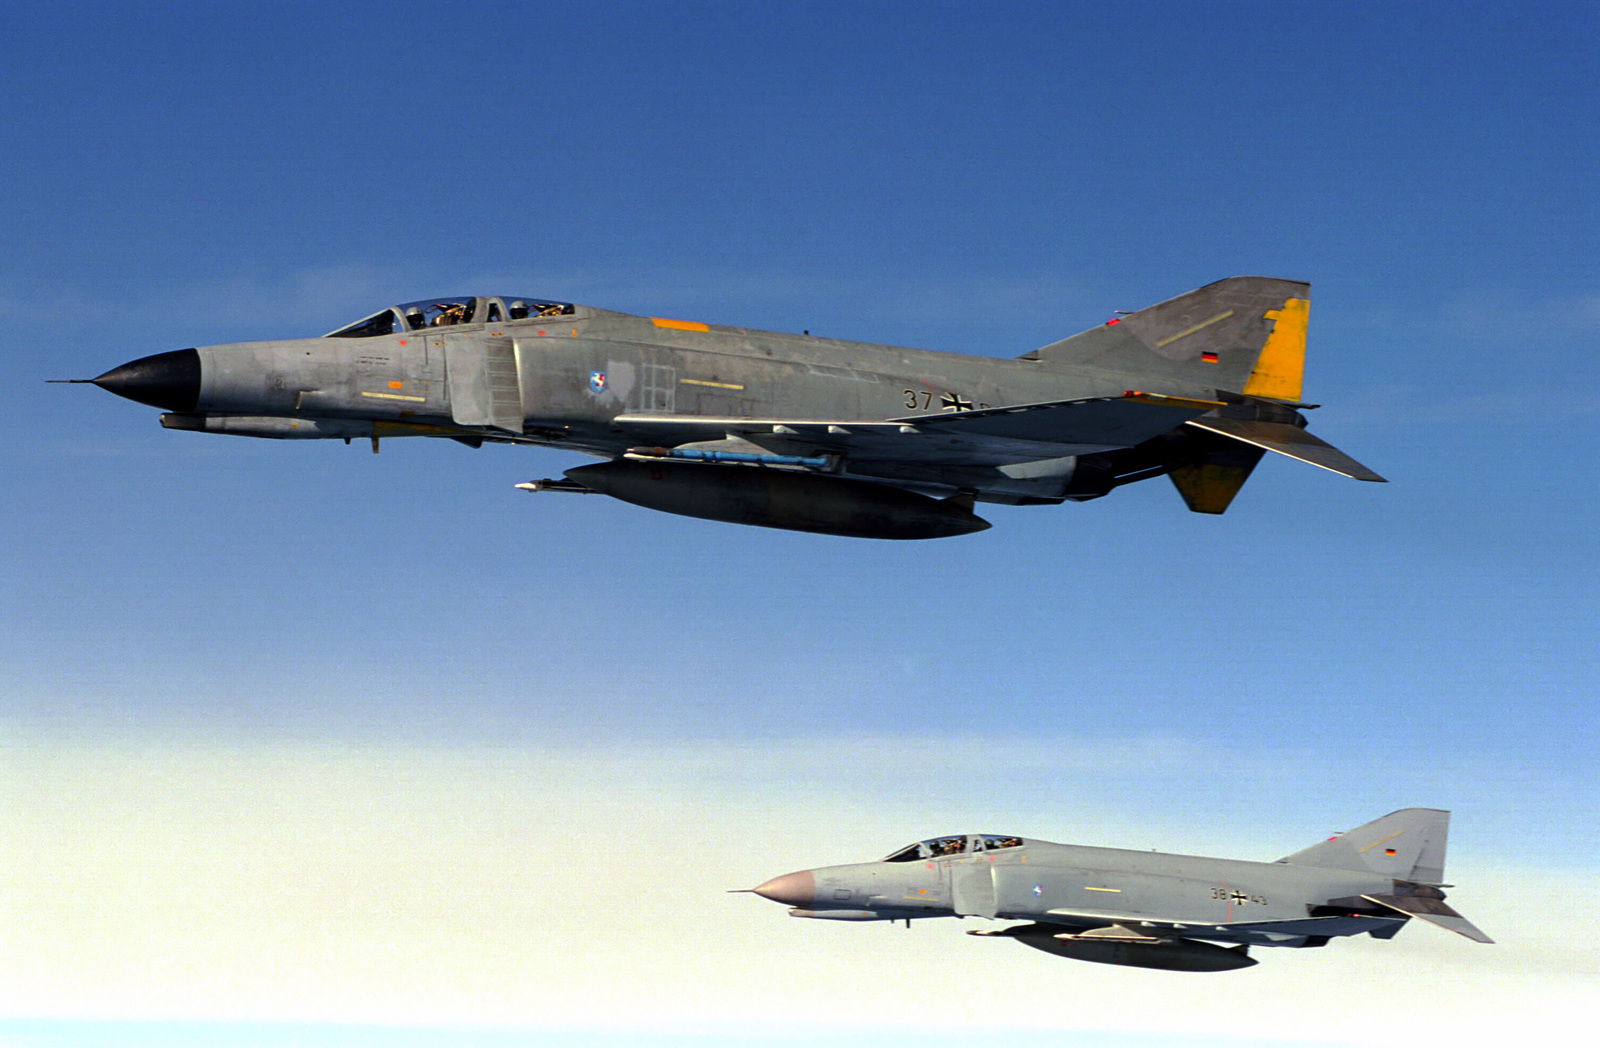 Two German Air Force F-4F Phantom aircraft fly in formation